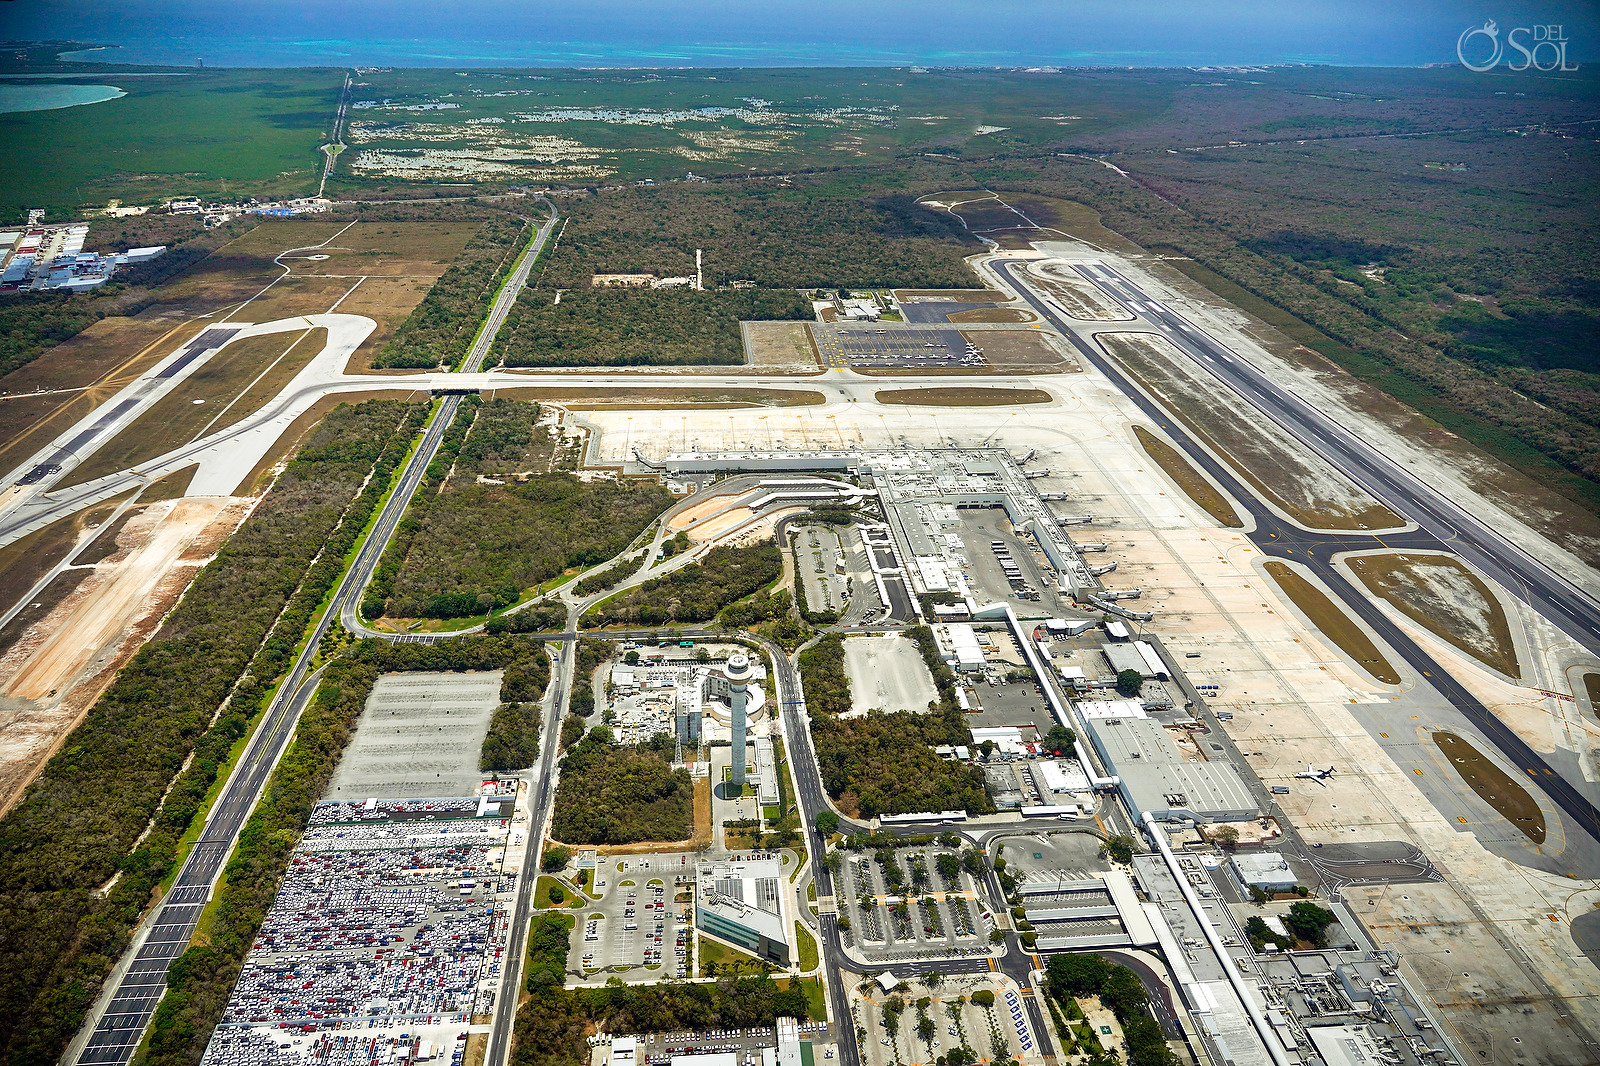 Cancun area aerial photography an the Cancun International Airport without planes